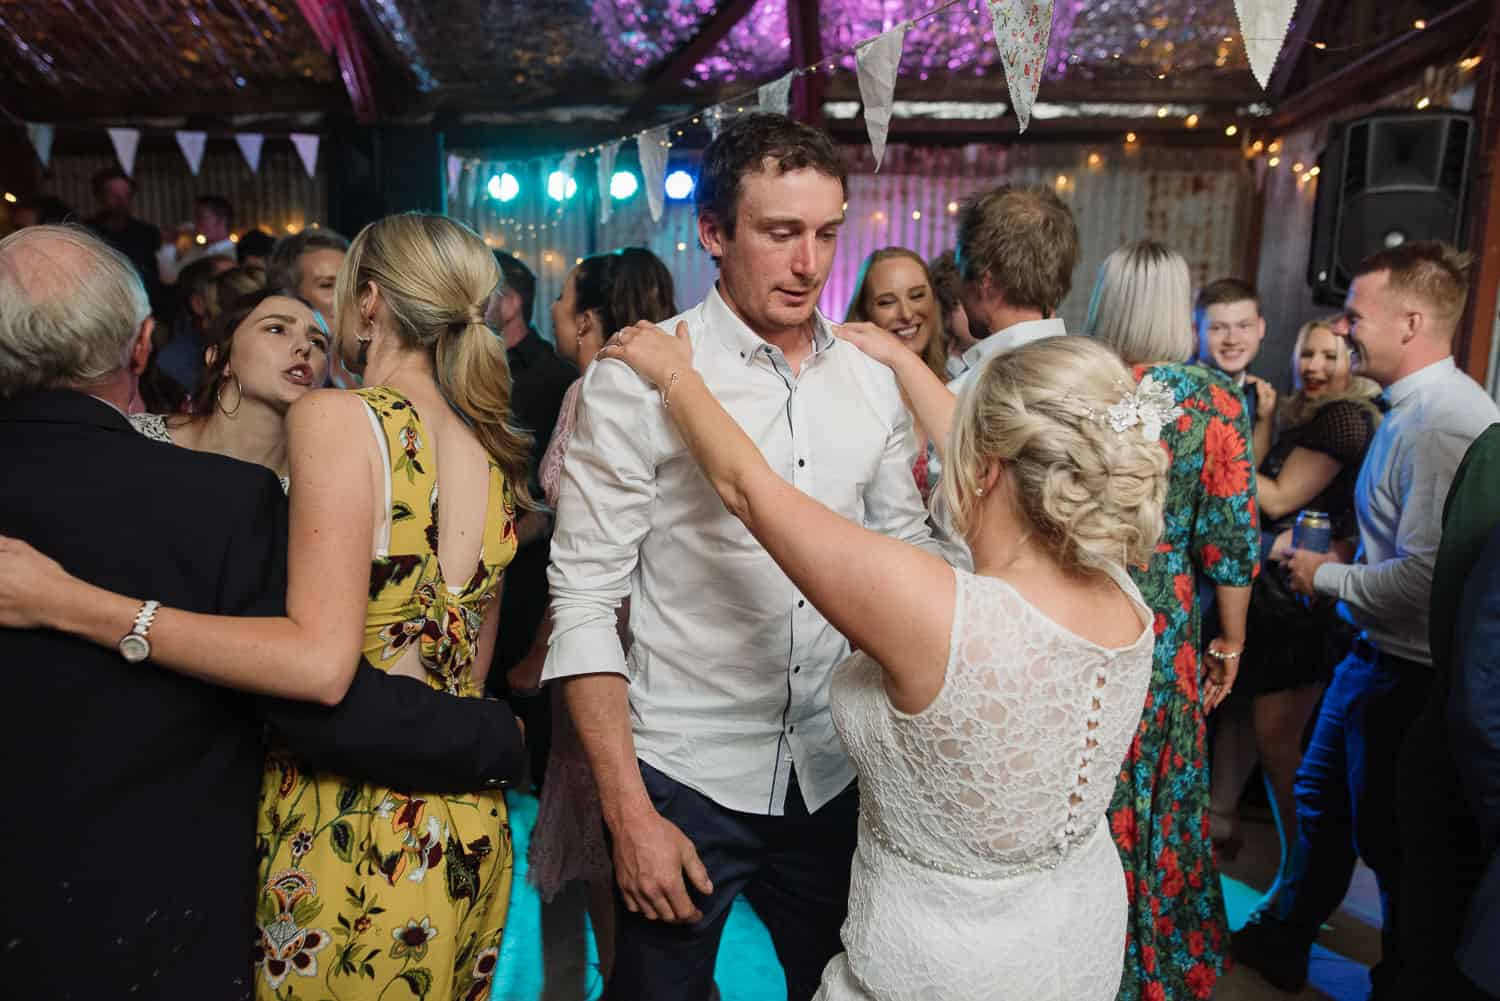 Ali and Sam on the dancefloor at their wedding